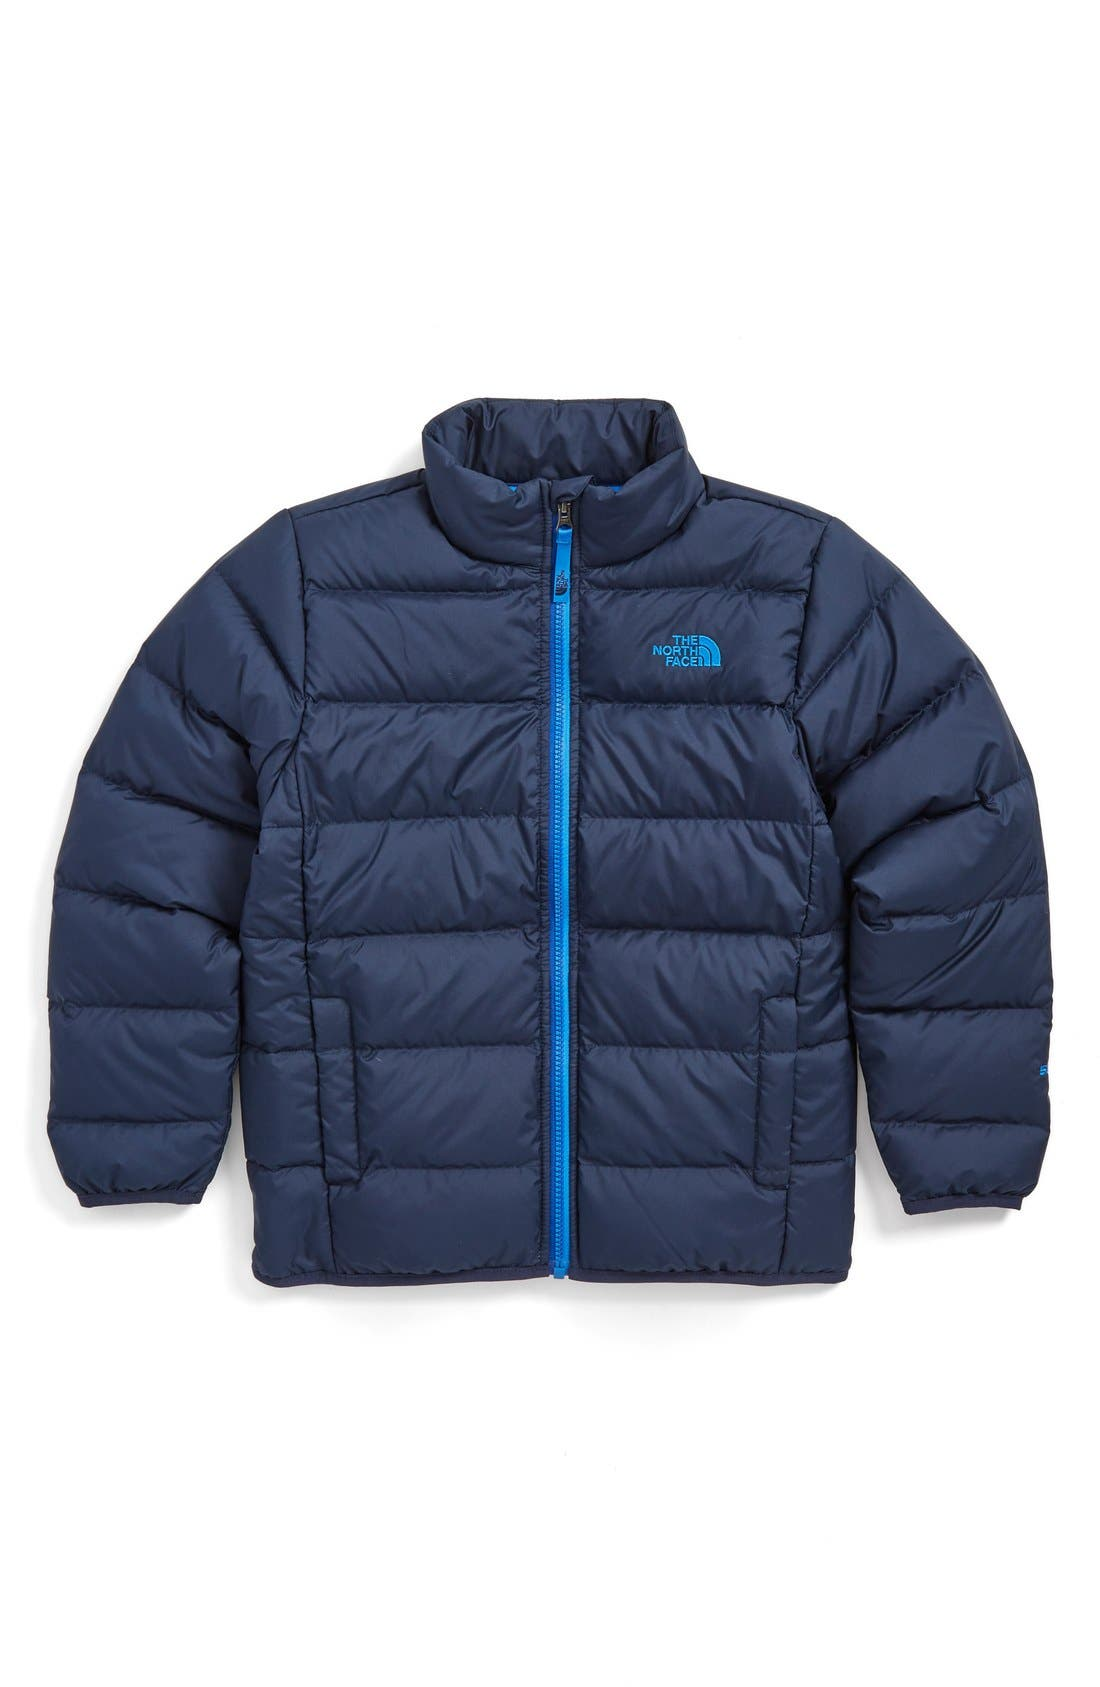 Alternate Image 1 Selected - The North Face 'Andes' Water Resistant 550-Fill Compressible Down Jacket (Big Boys)